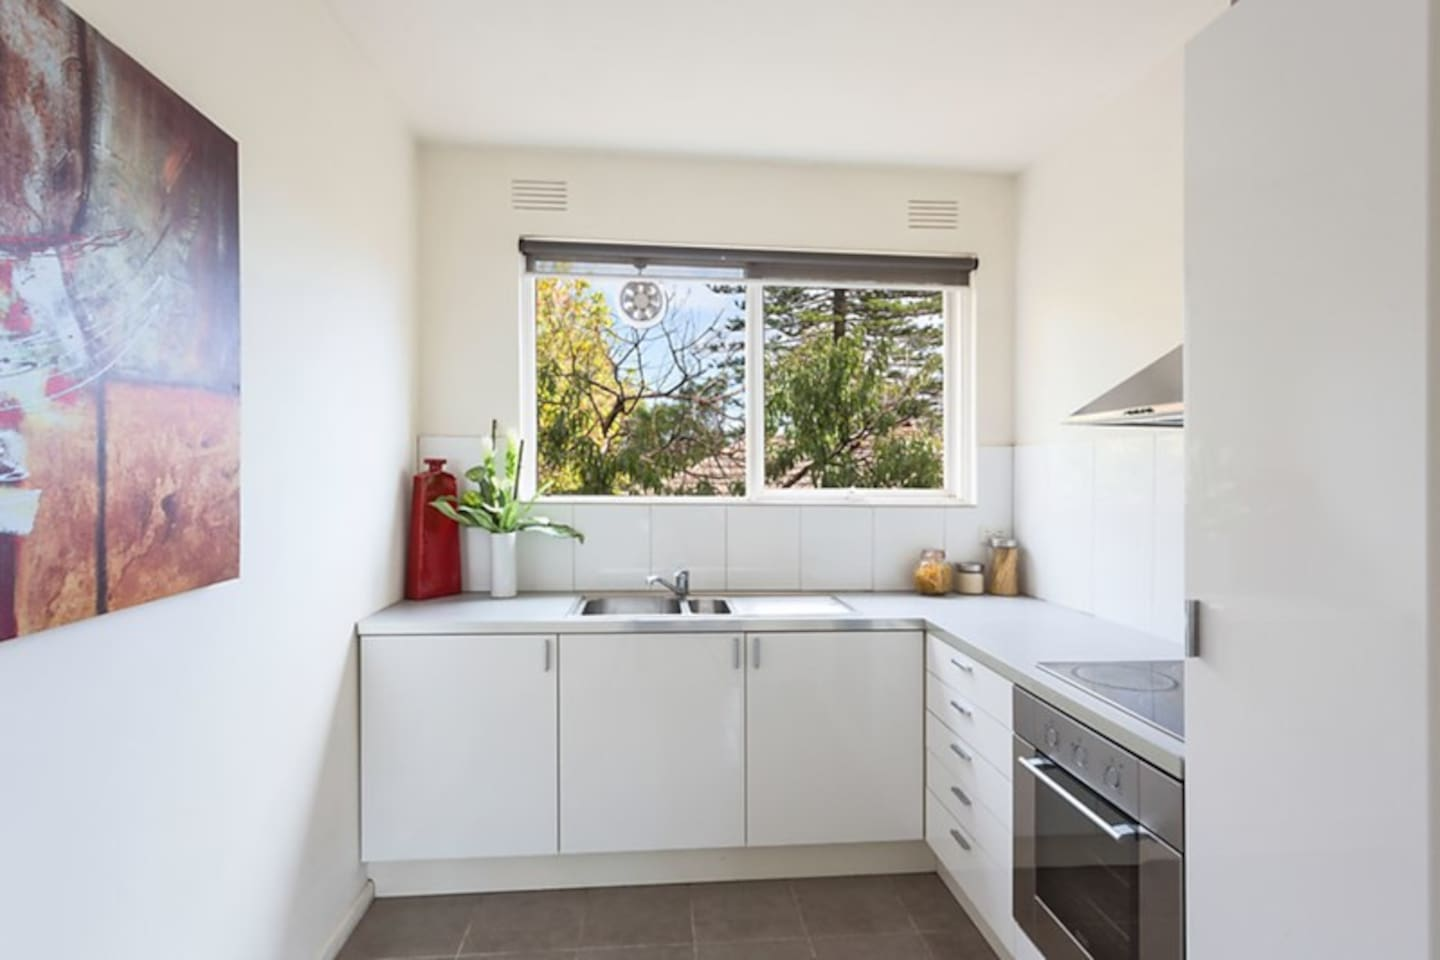 Bright and modern kitchen with all utilities and also a small breakfast table.